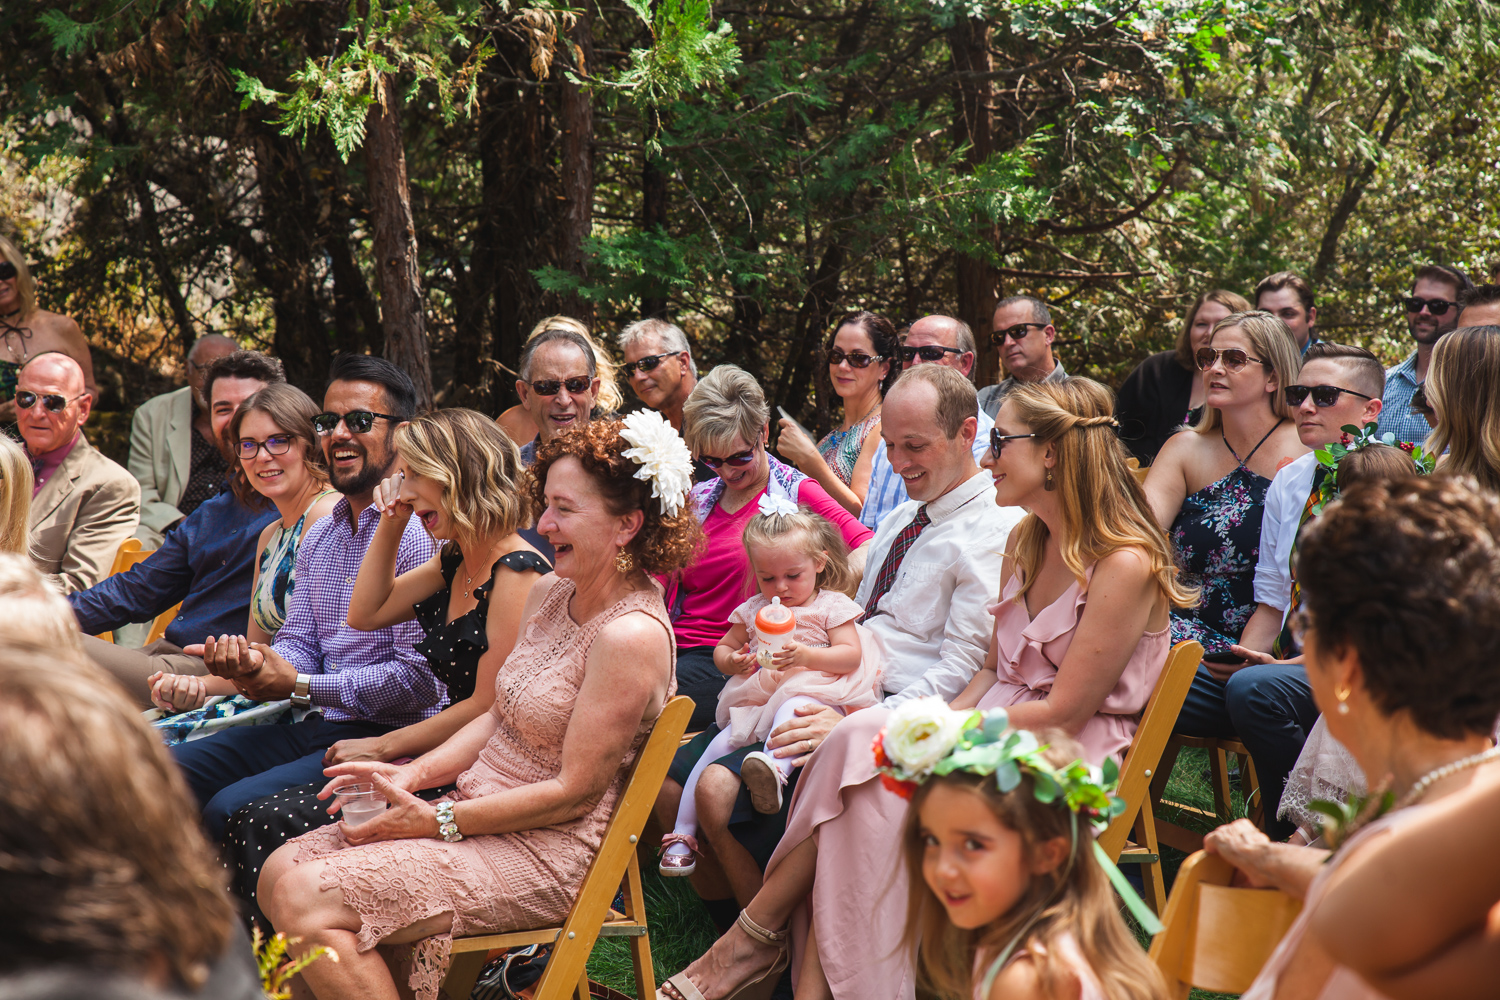 evergreen lodge wedding ceremony.jpg